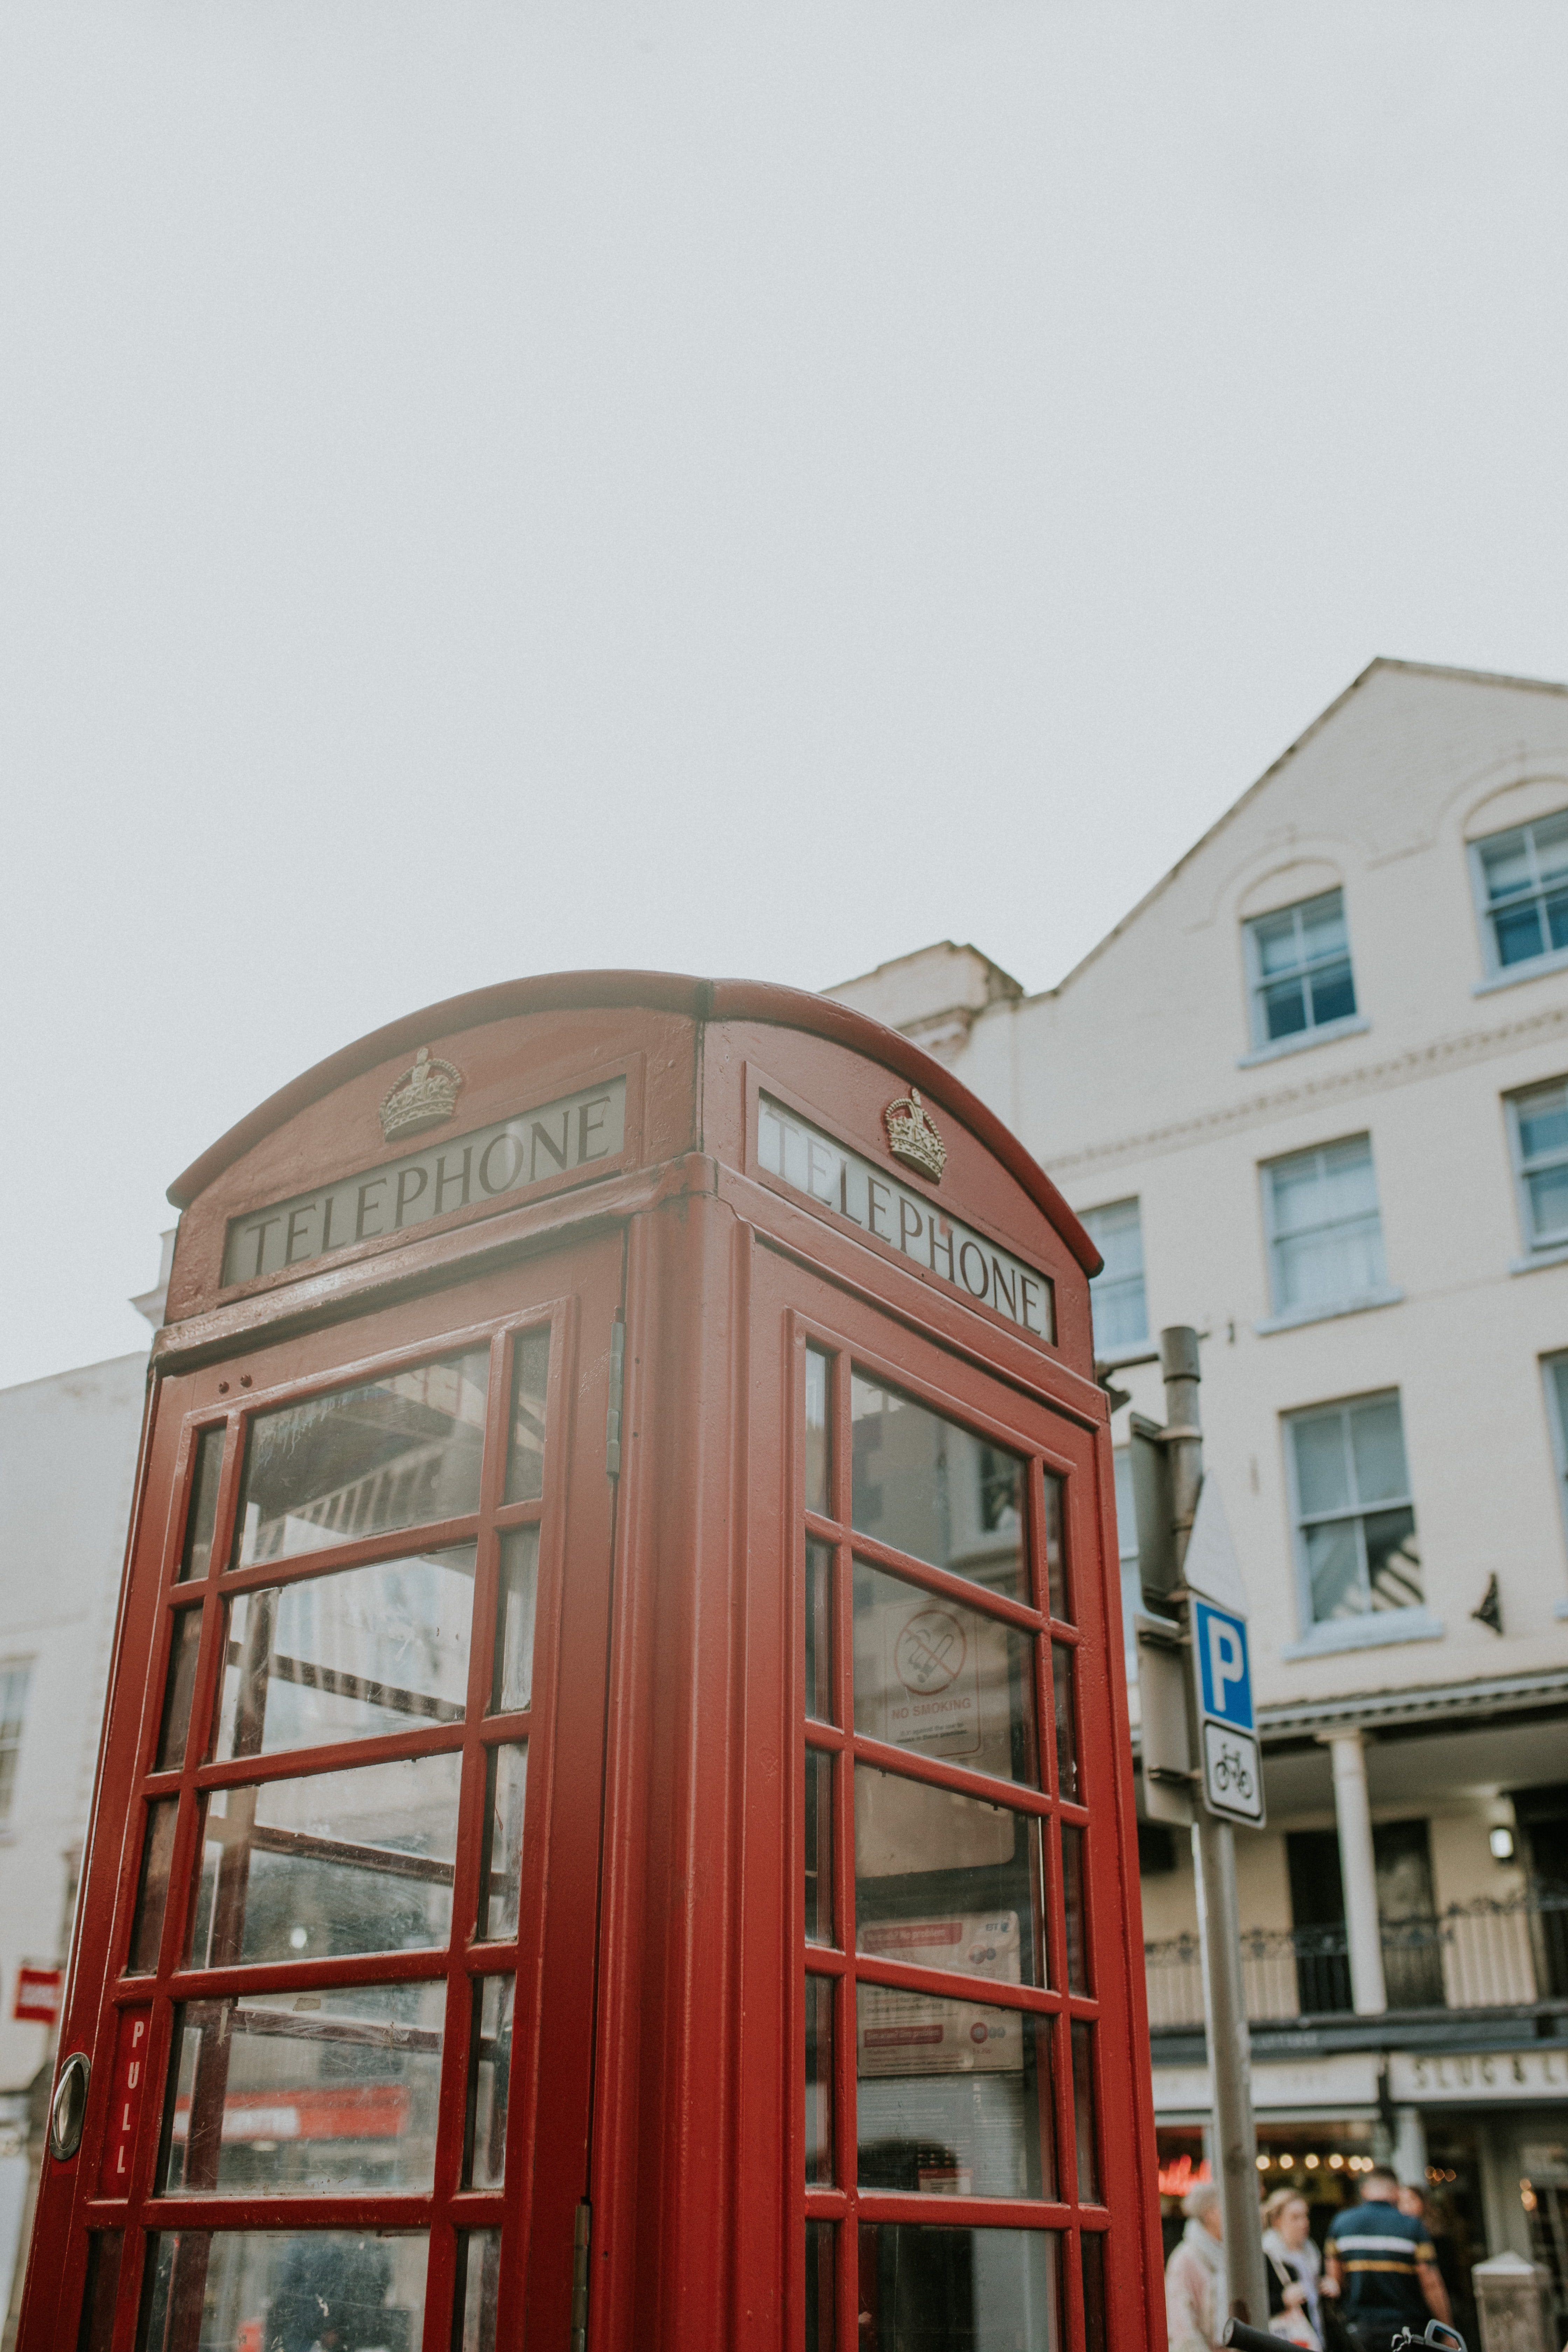 red telephone booth near white concrete building